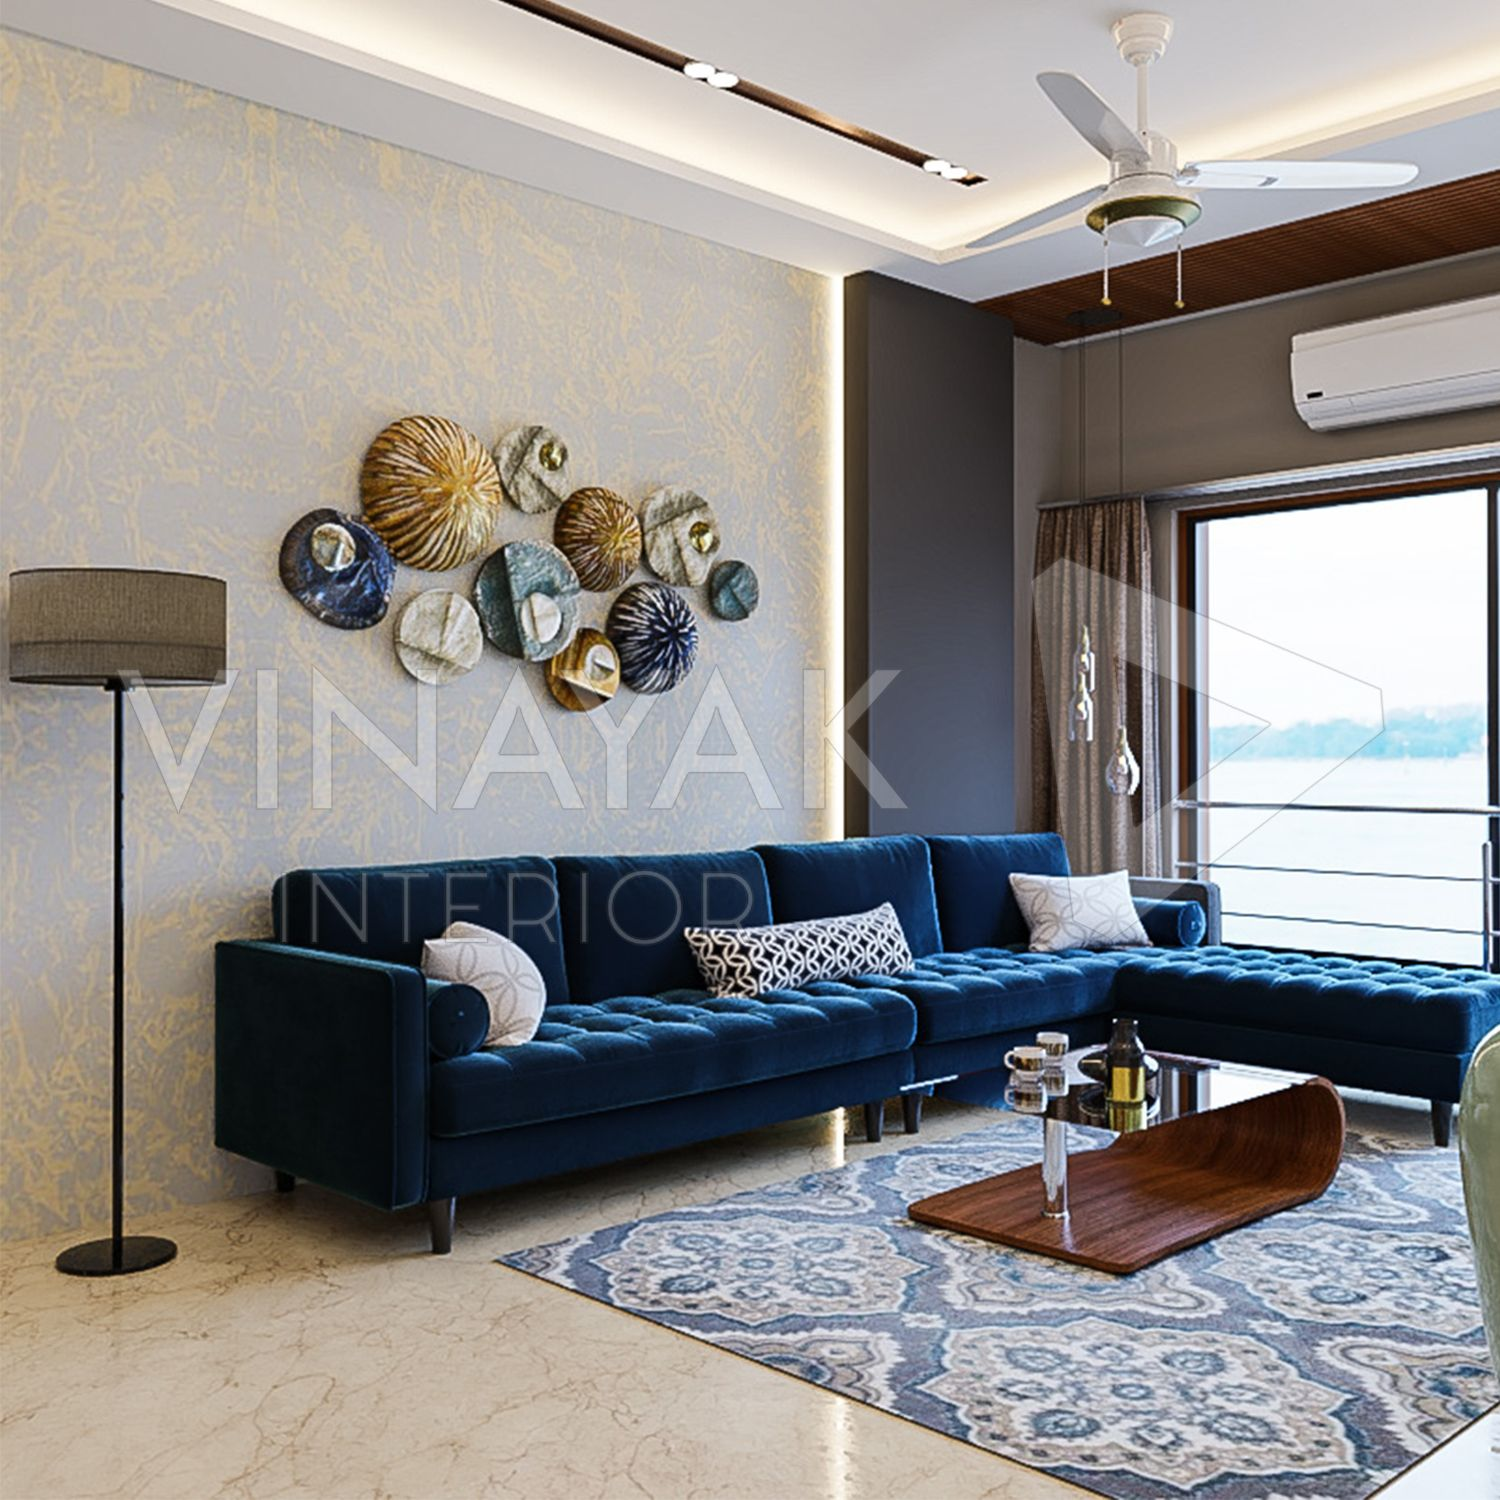 Decorate Your Home With Powerful Furnishings From Vinayak Inte